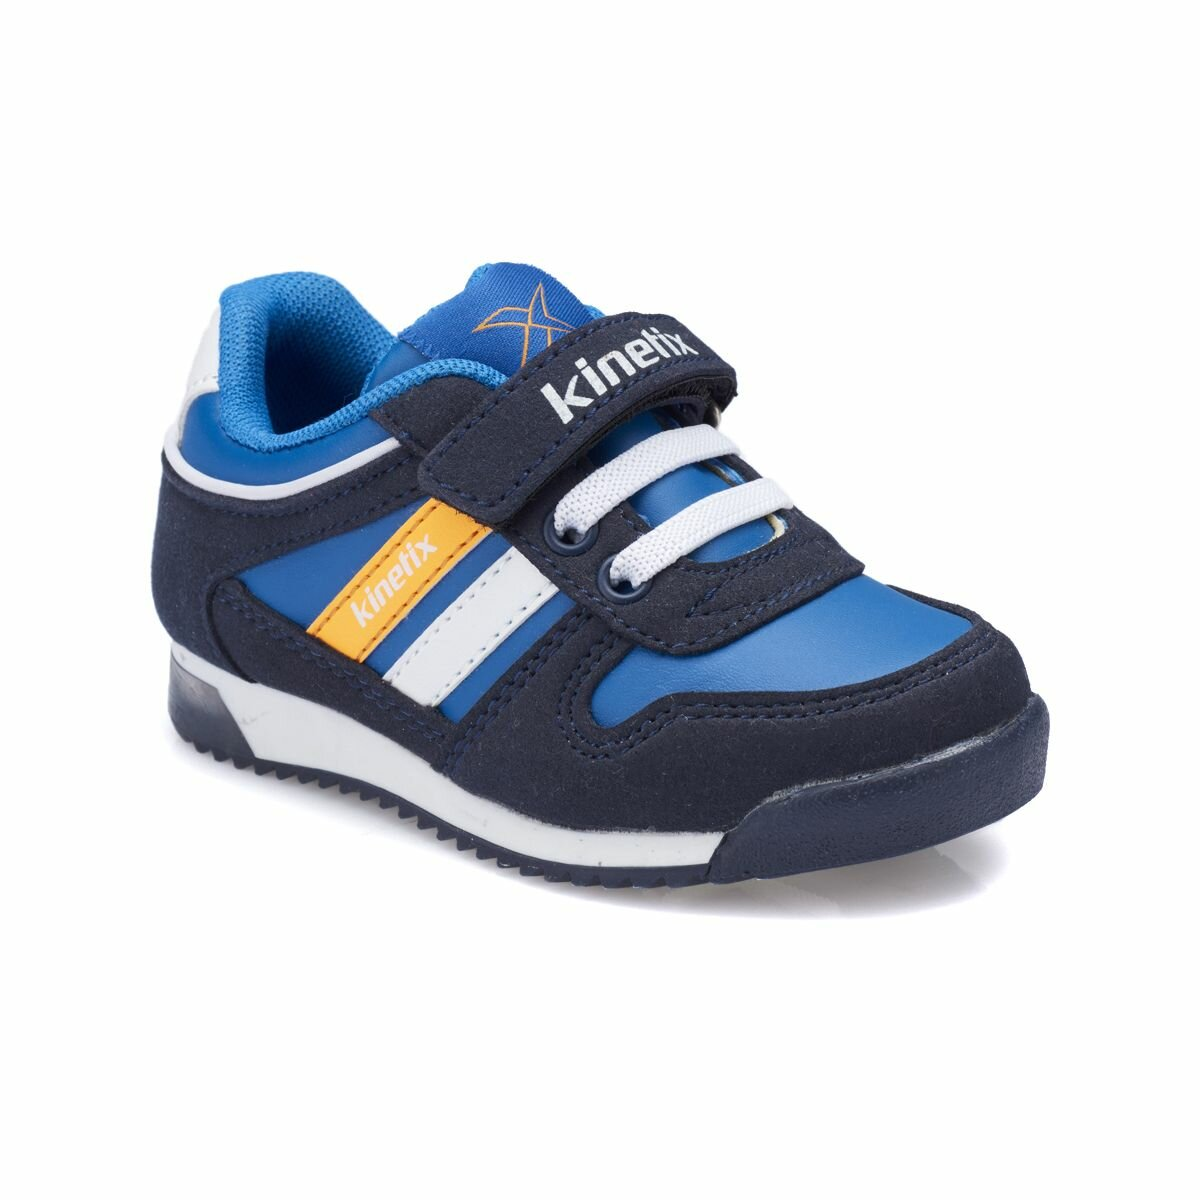 FLO FEMAND PU Navy Blue Male Child Sneaker Shoes KINETIX